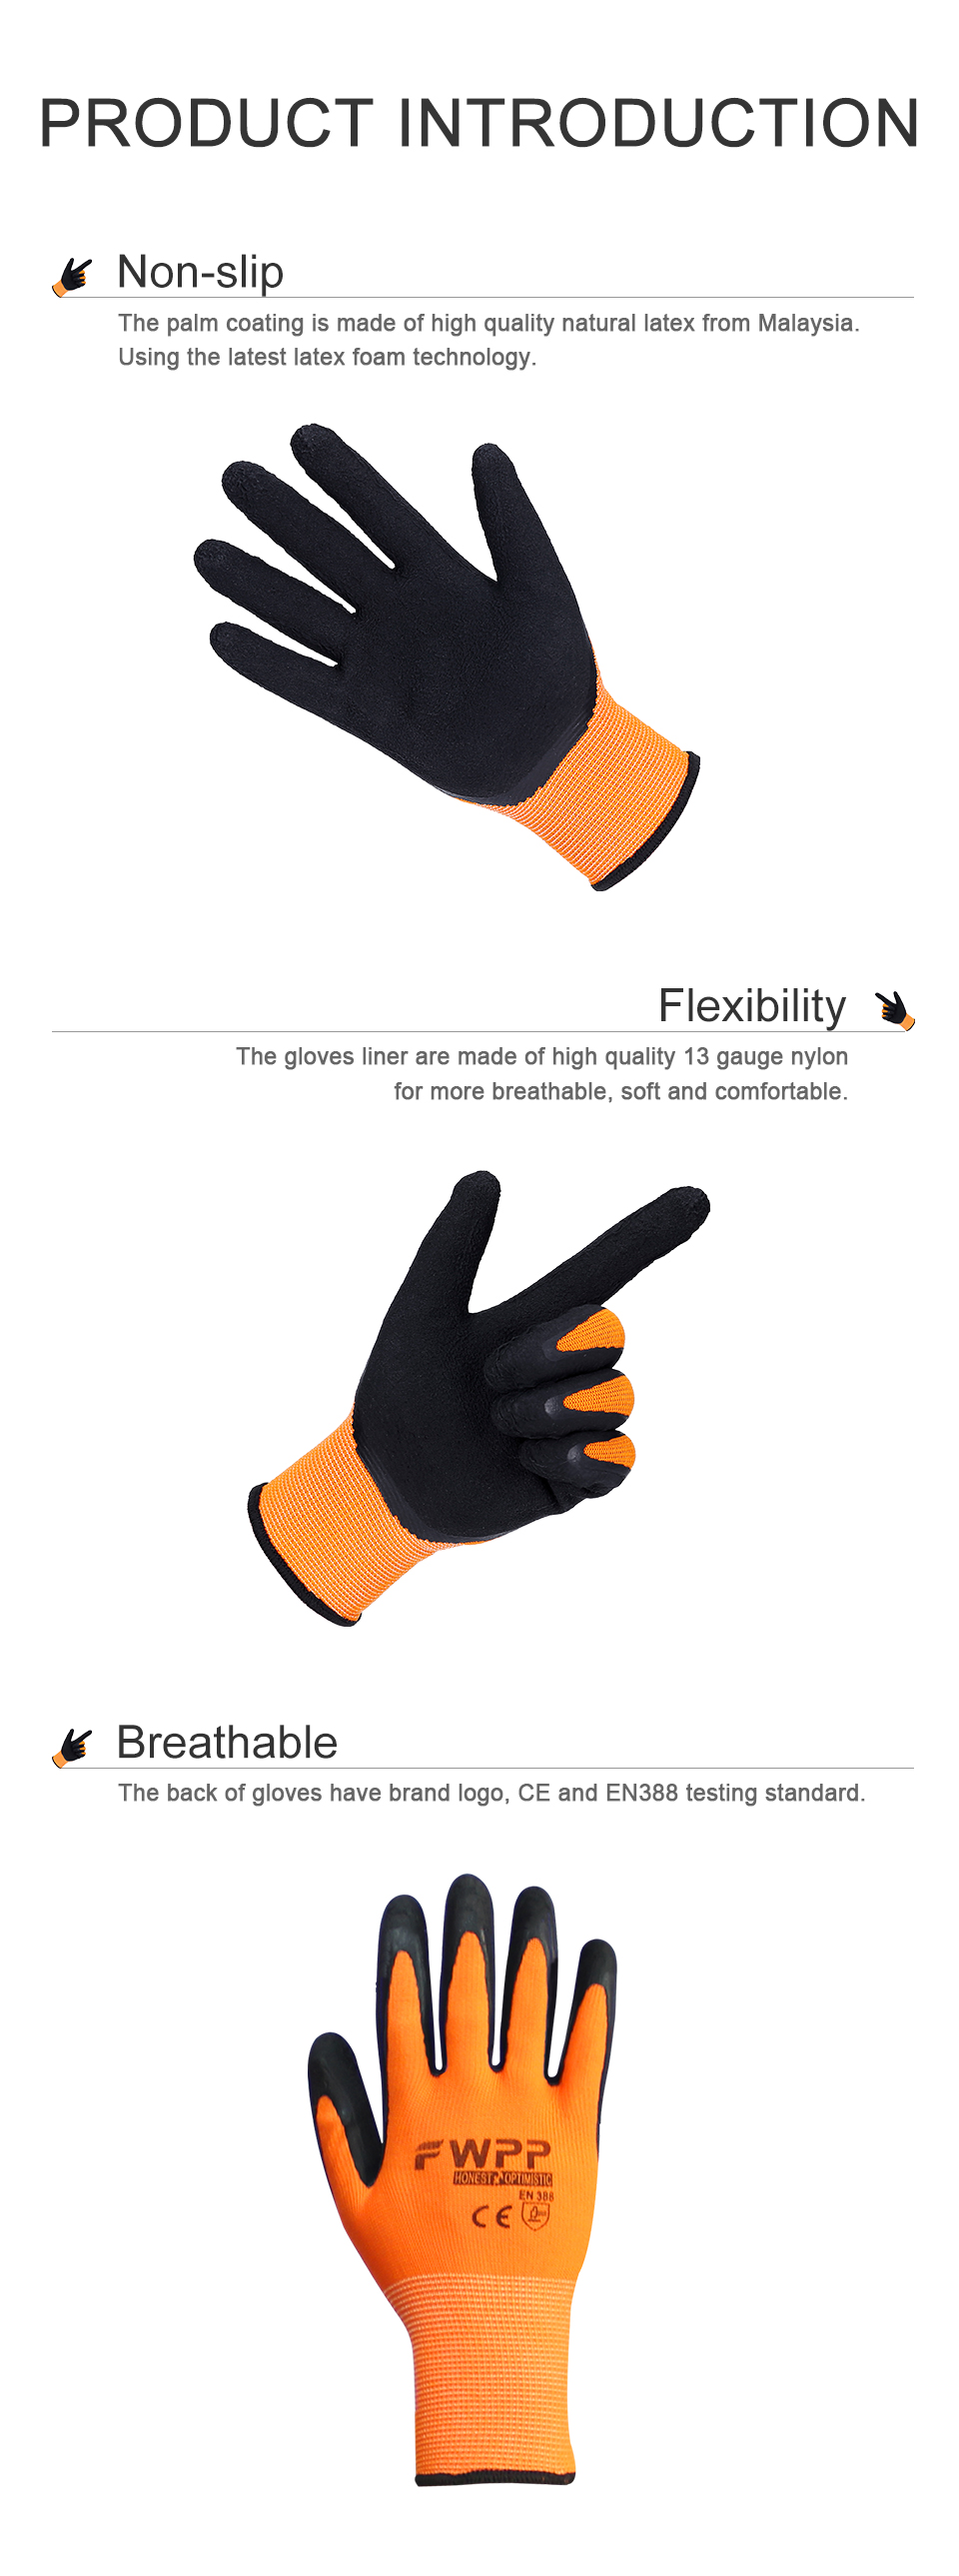 FWPP 1-3 pairs work gloves comfortable breathable non-slip wear-resistant  Fluorescent yellow latex coated gloves